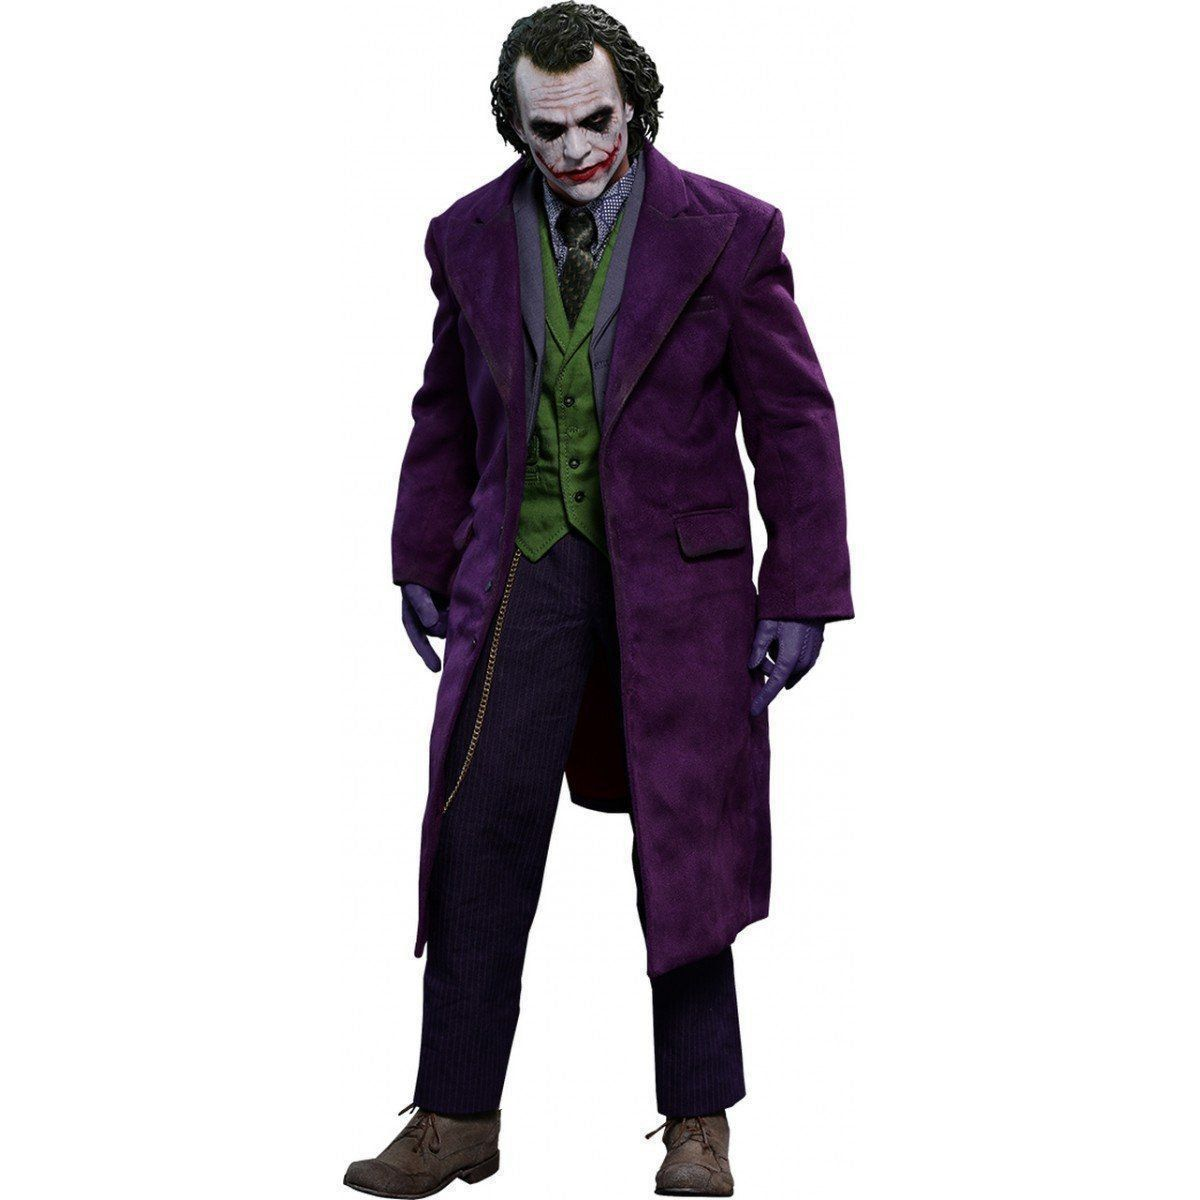 Action Figure Coringa (The Joker): Batman O Cavaleiro das Trevas (The Dark Knight) QS010 (Escala 1/4) - Hot Toys